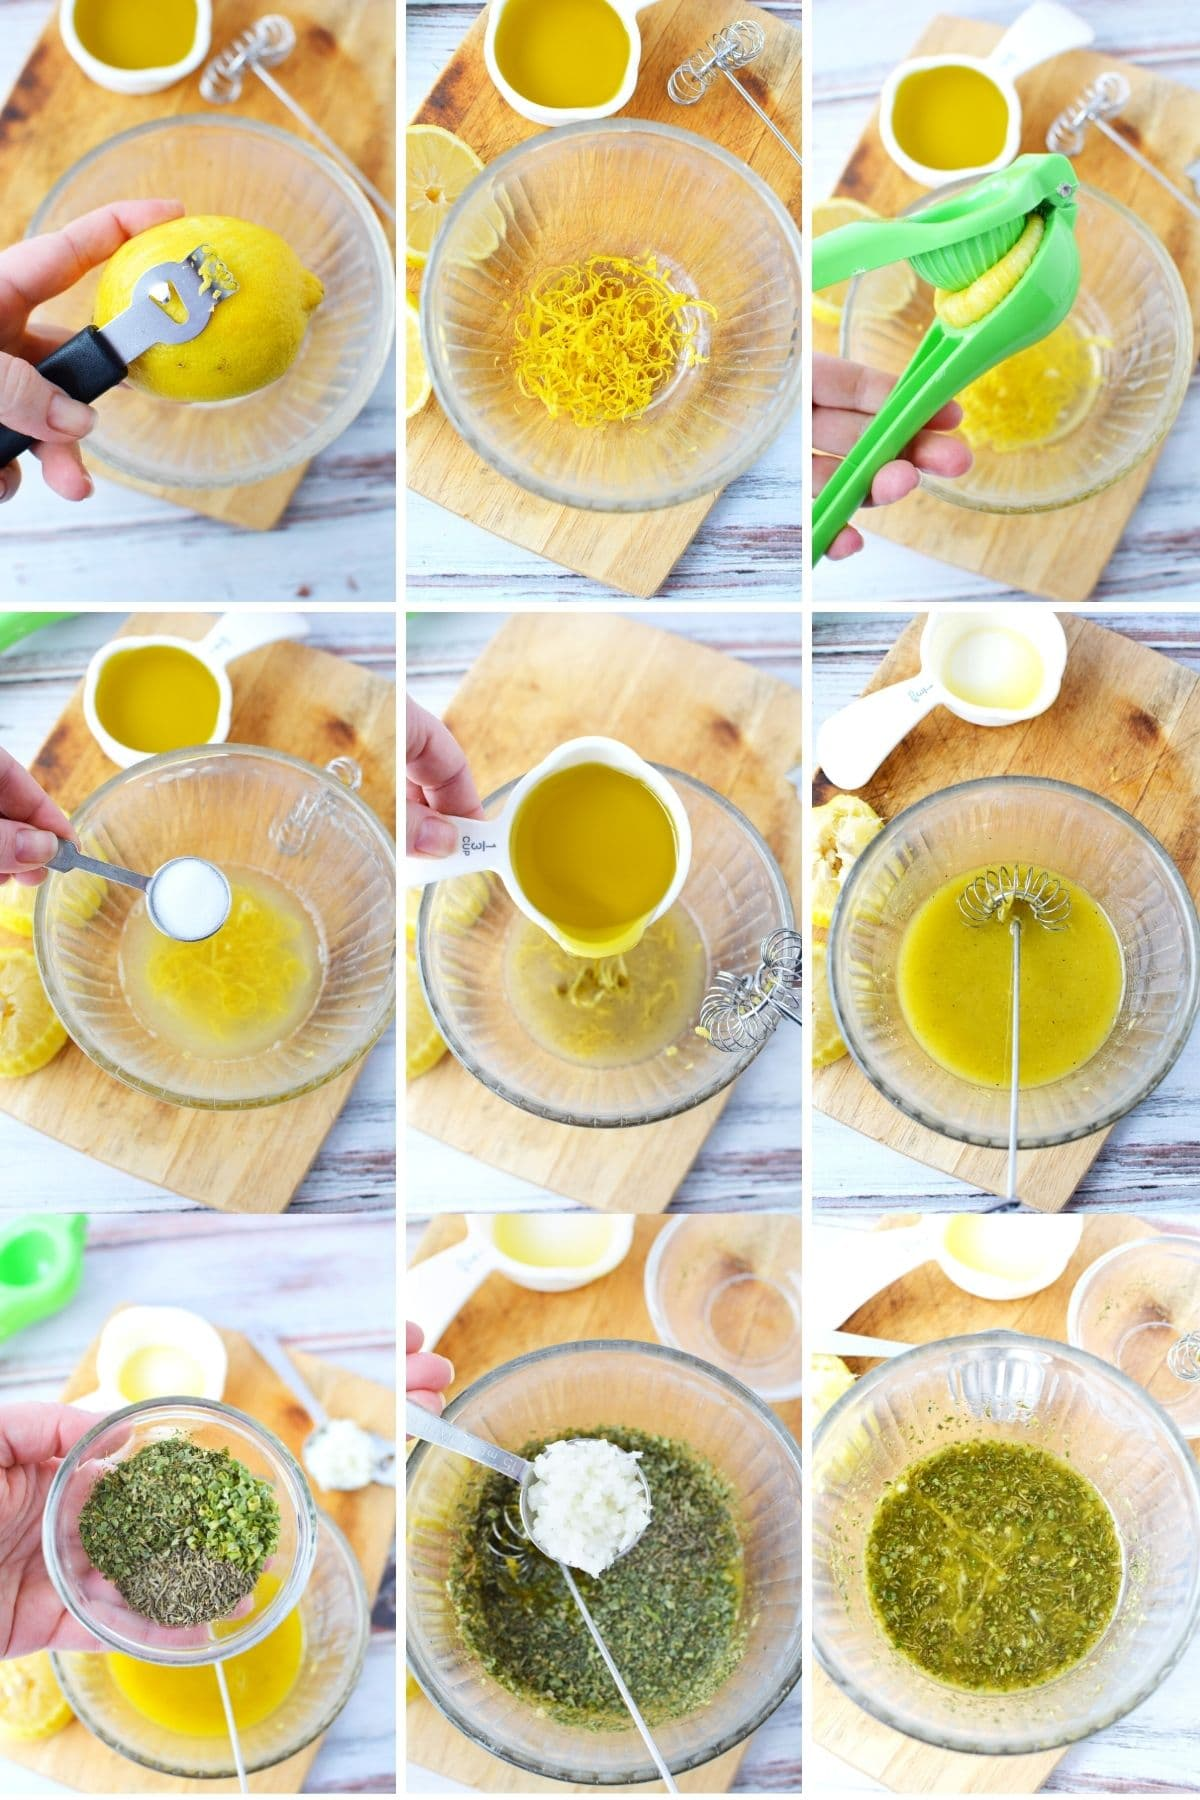 making lemon and herb dressing with fresh lemon, measuring out ingredients and whisking at the end